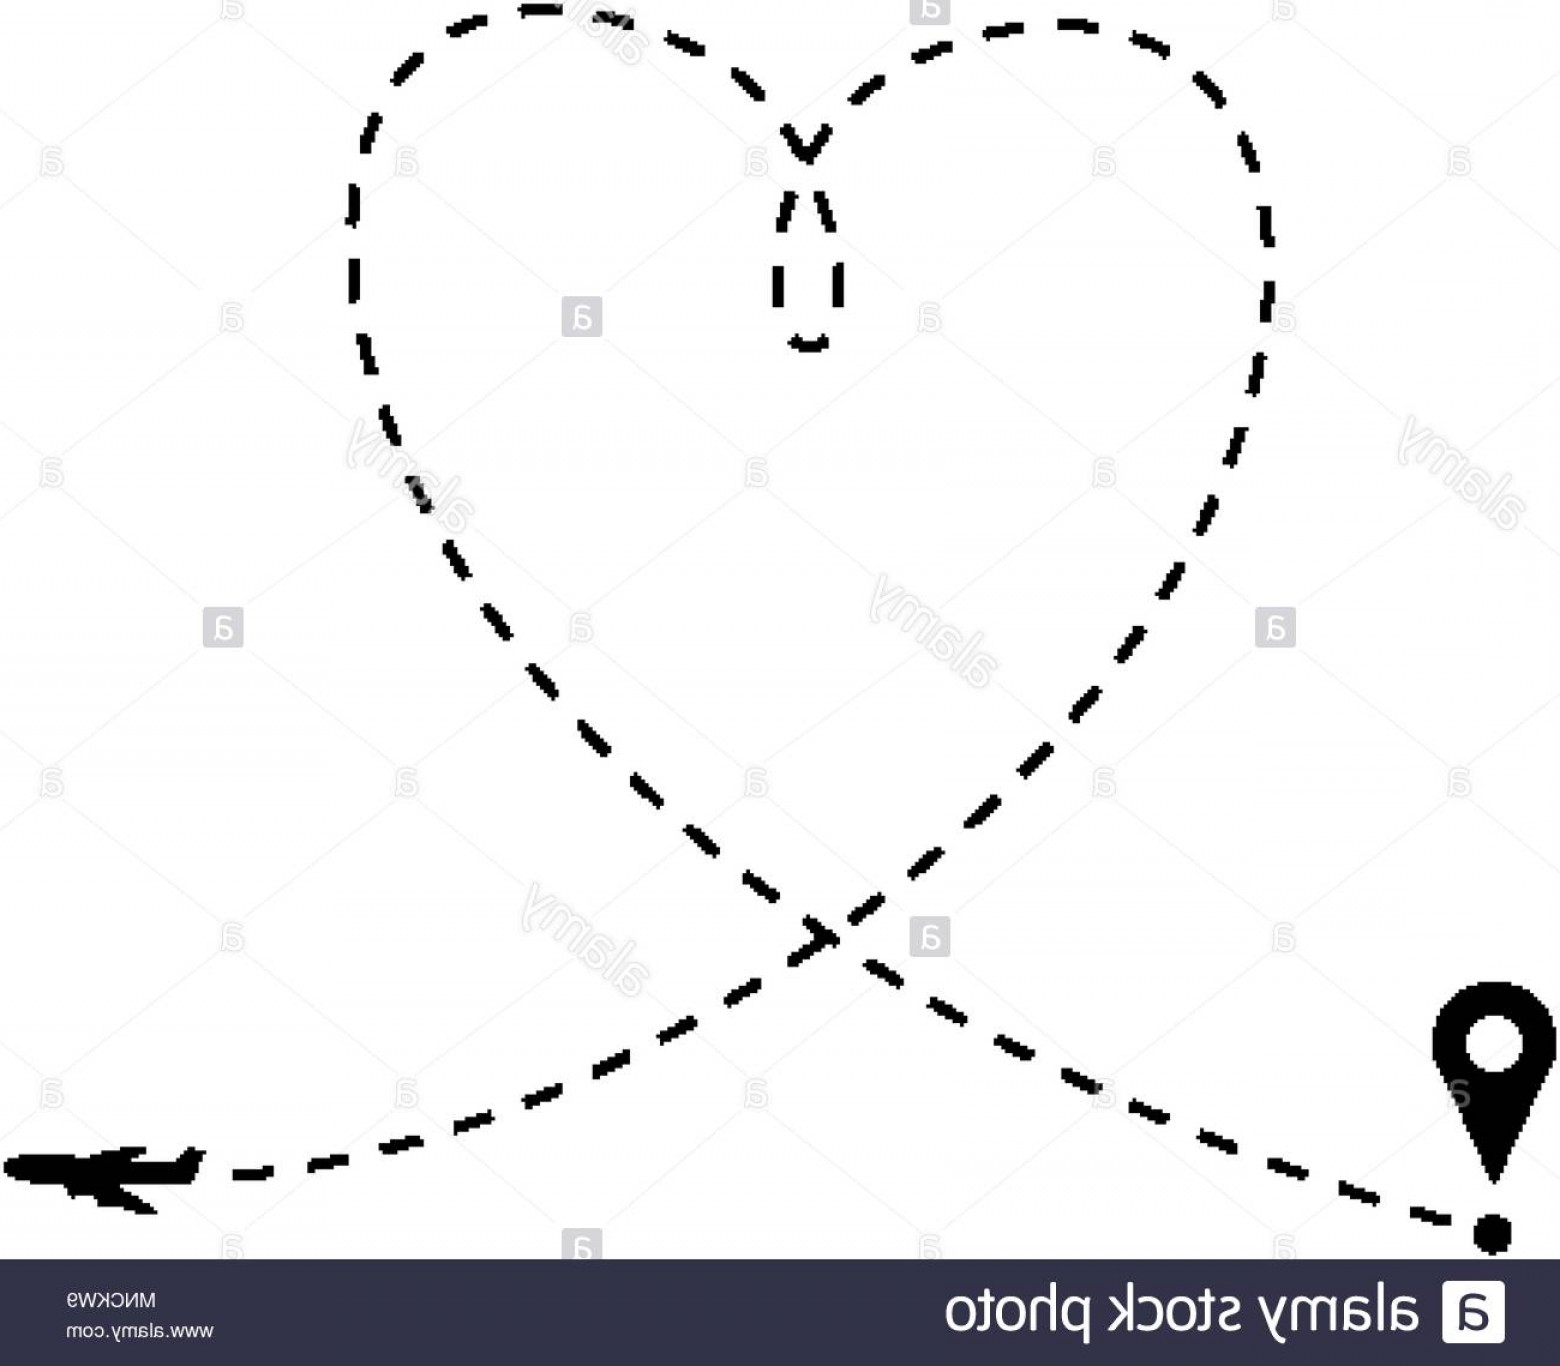 Black Heart And Plane Vector: Love Is In The Air Concept Plane And Heart Shaped Path Image